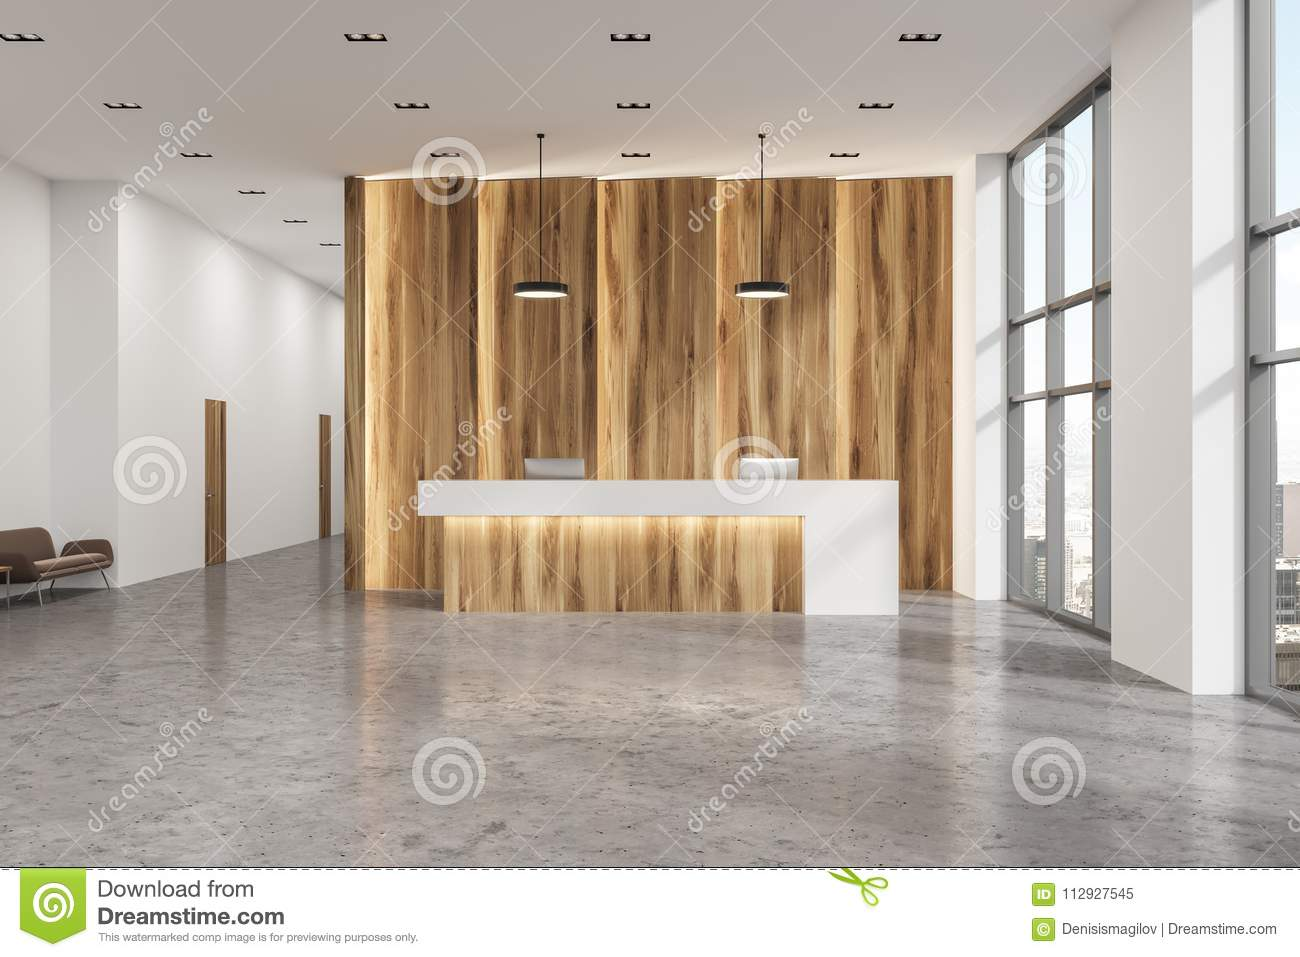 Modern office lobby Lounge Wooden And White Reception Desk Standing In Modern Office Hall With Concrete Floor 3d Rendering Mock Up Dreamstimecom Wooden And White Reception Office Lobby Stock Illustration